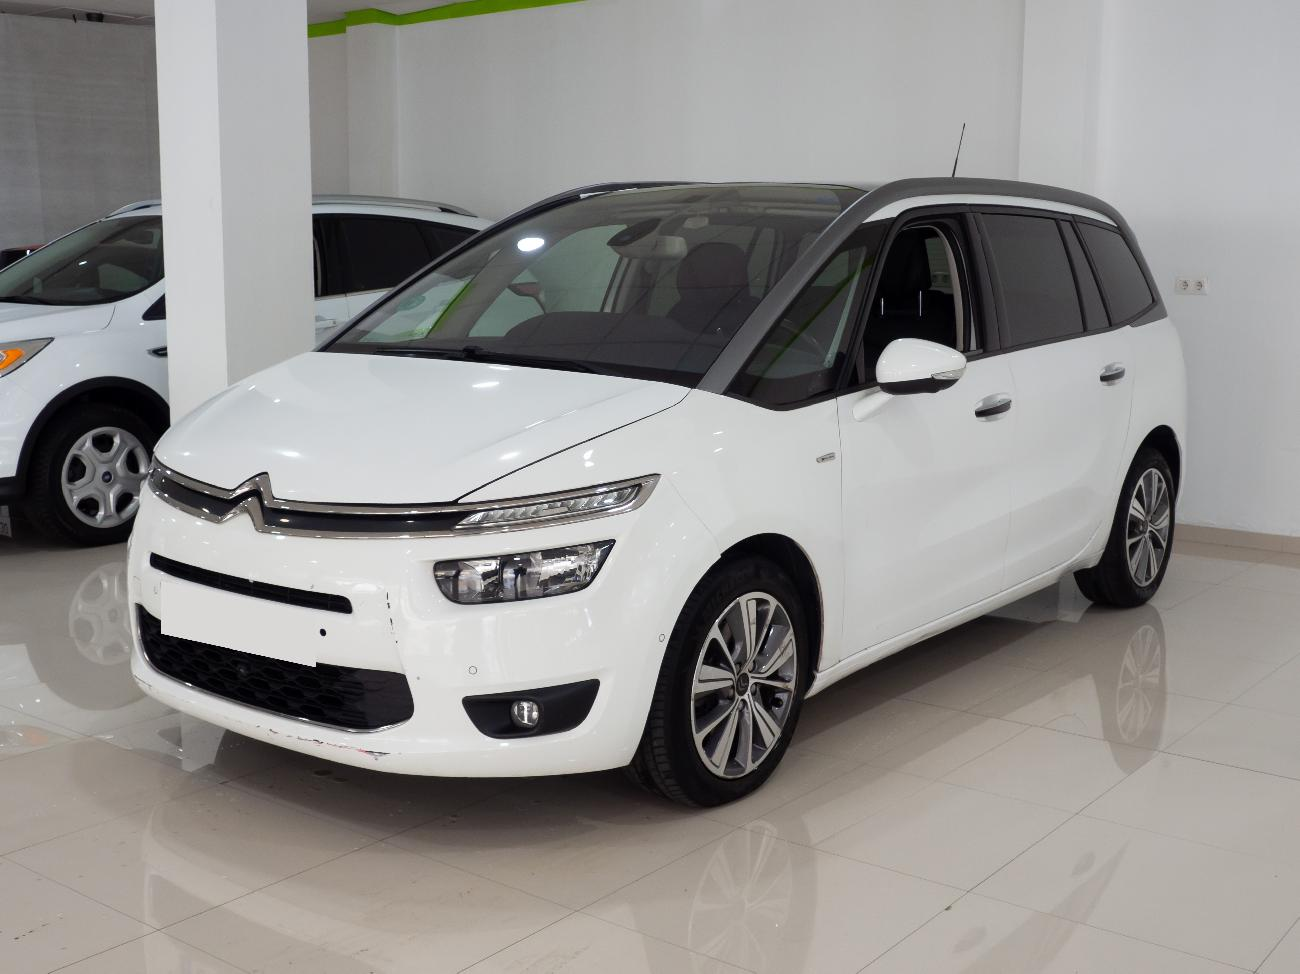 2016 Citroën Grand C4 Picasso Grand C4 Picasso BlueHDi 150cv EAT6 Exclusive coche de segunda mano